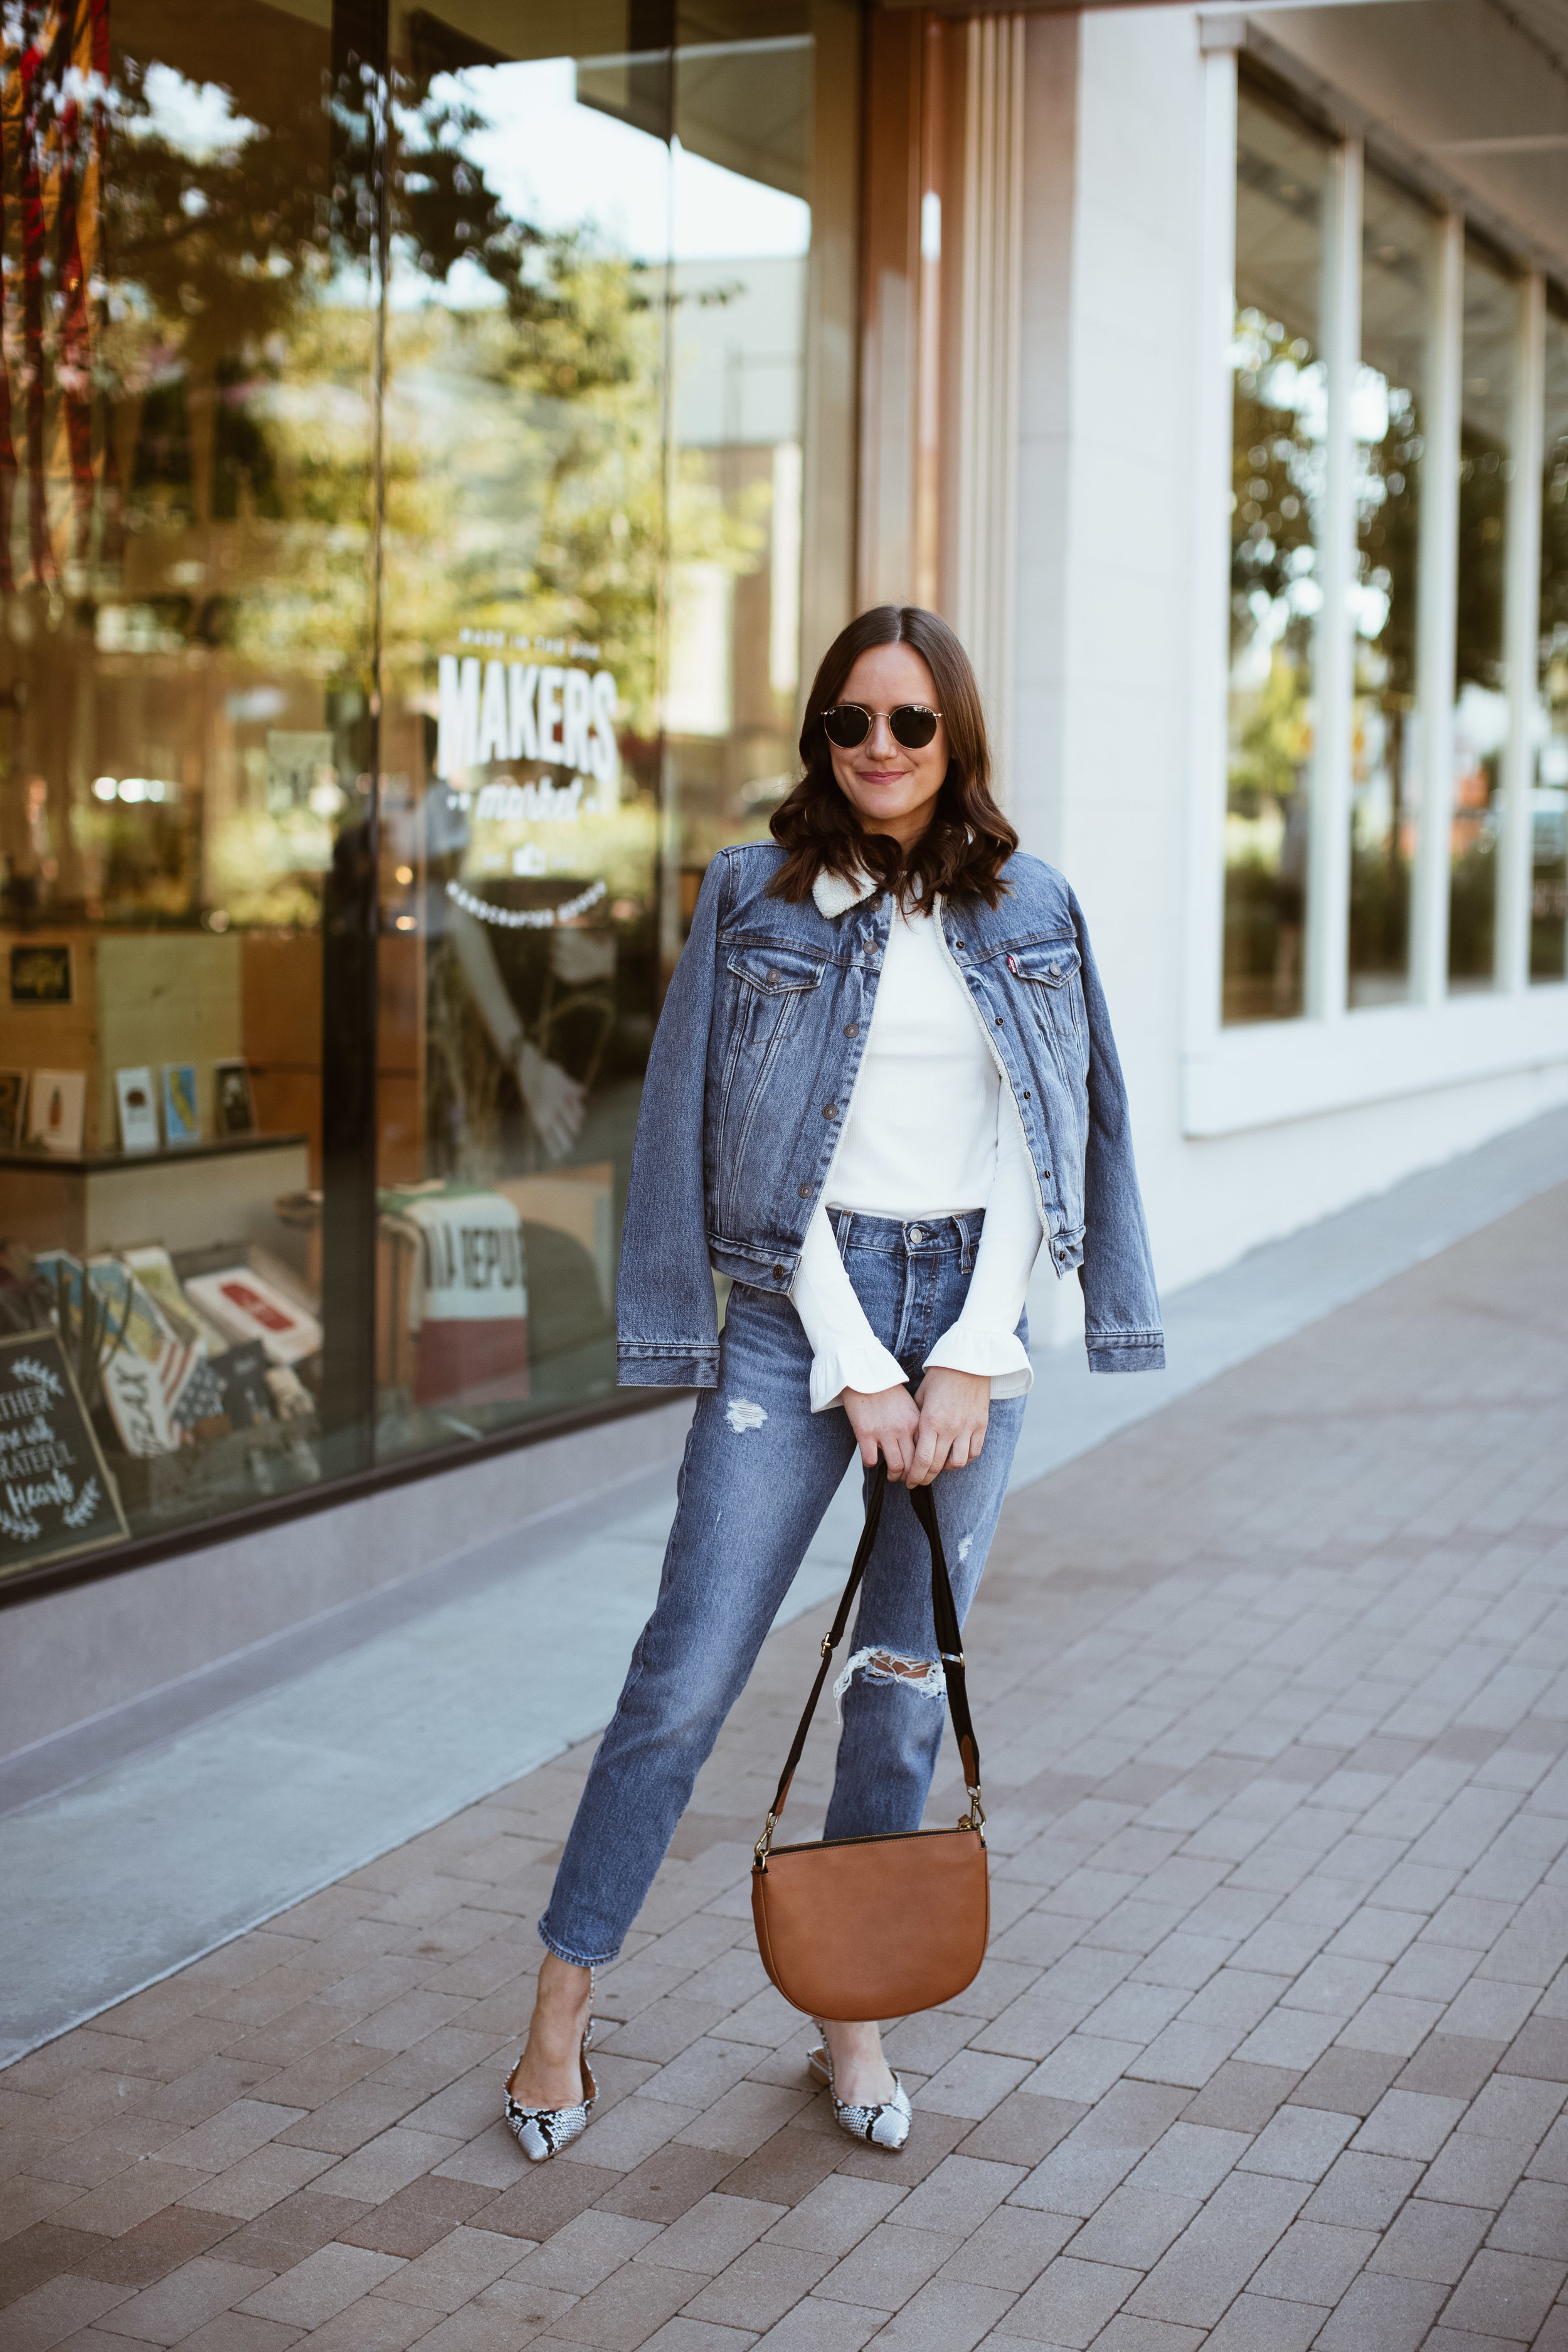 Shop the Look Below.  Levi's Top  |  Levi's Wedgie Jeans  |  Levi's Sherpa Jacket  |  Levi's Bag  |  Shopbop Shoes  |  Ray-Ban Sunglasses